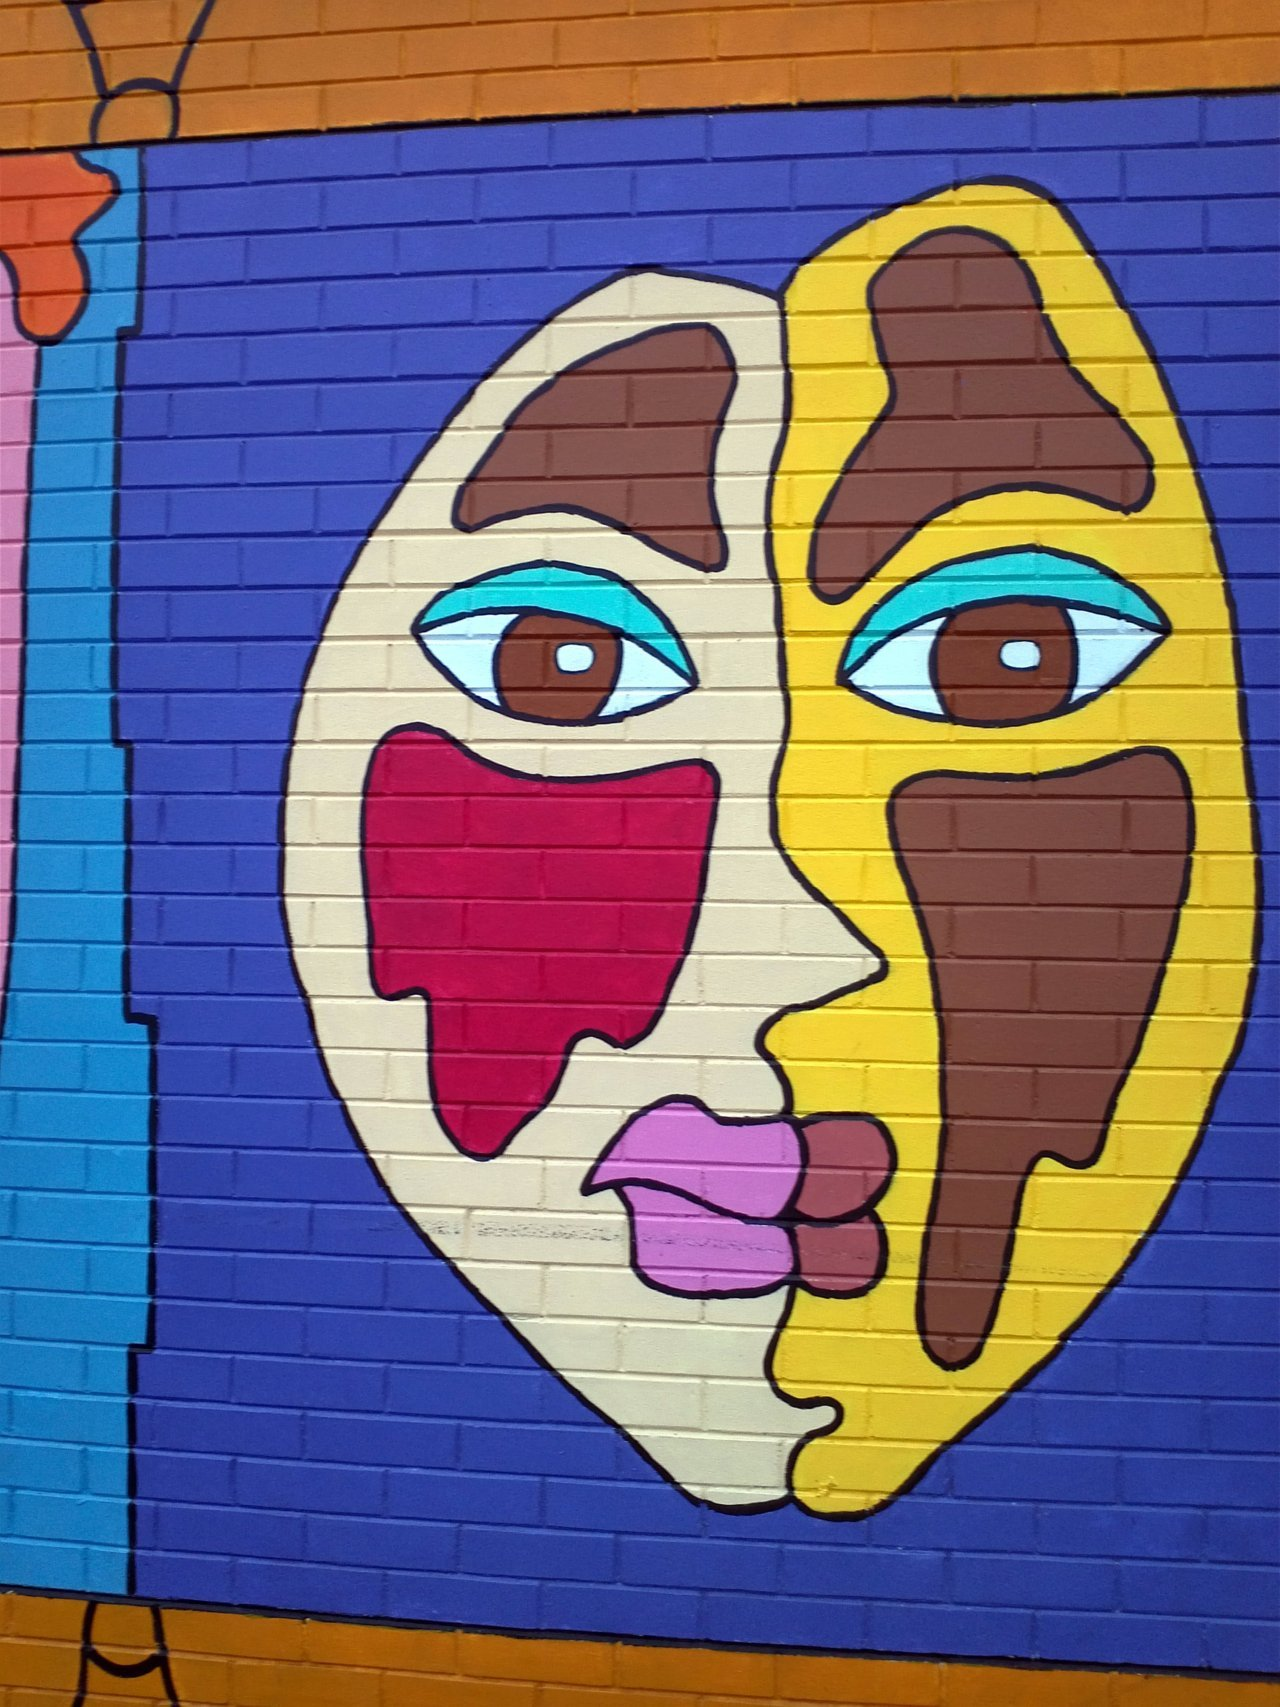 Pamela Rojas' KW Multicultural Centre mural, Kitchener, ON